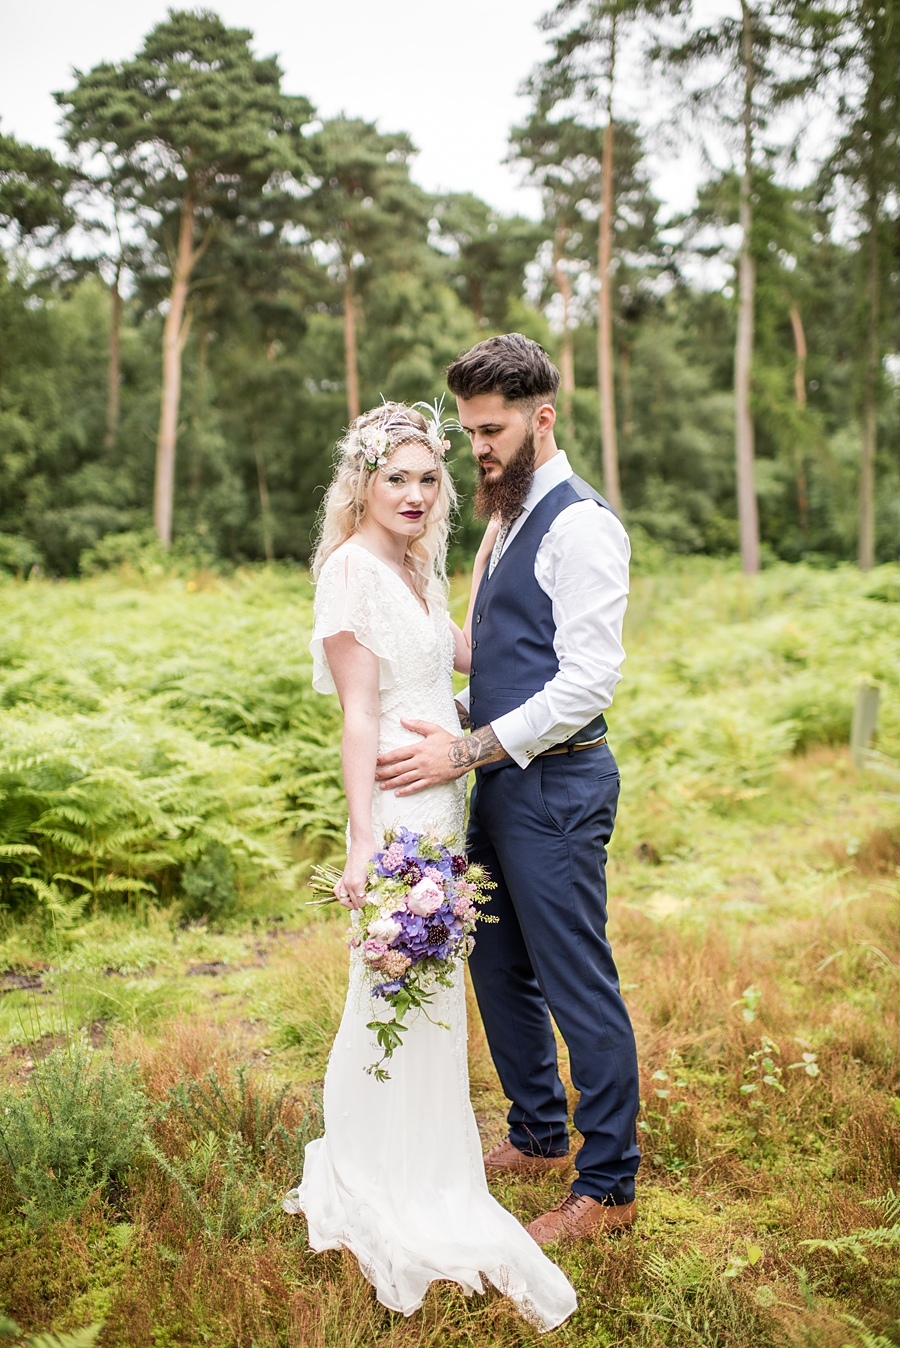 Jane Beadnell Photography – Northstar Styled Shoot-_0031